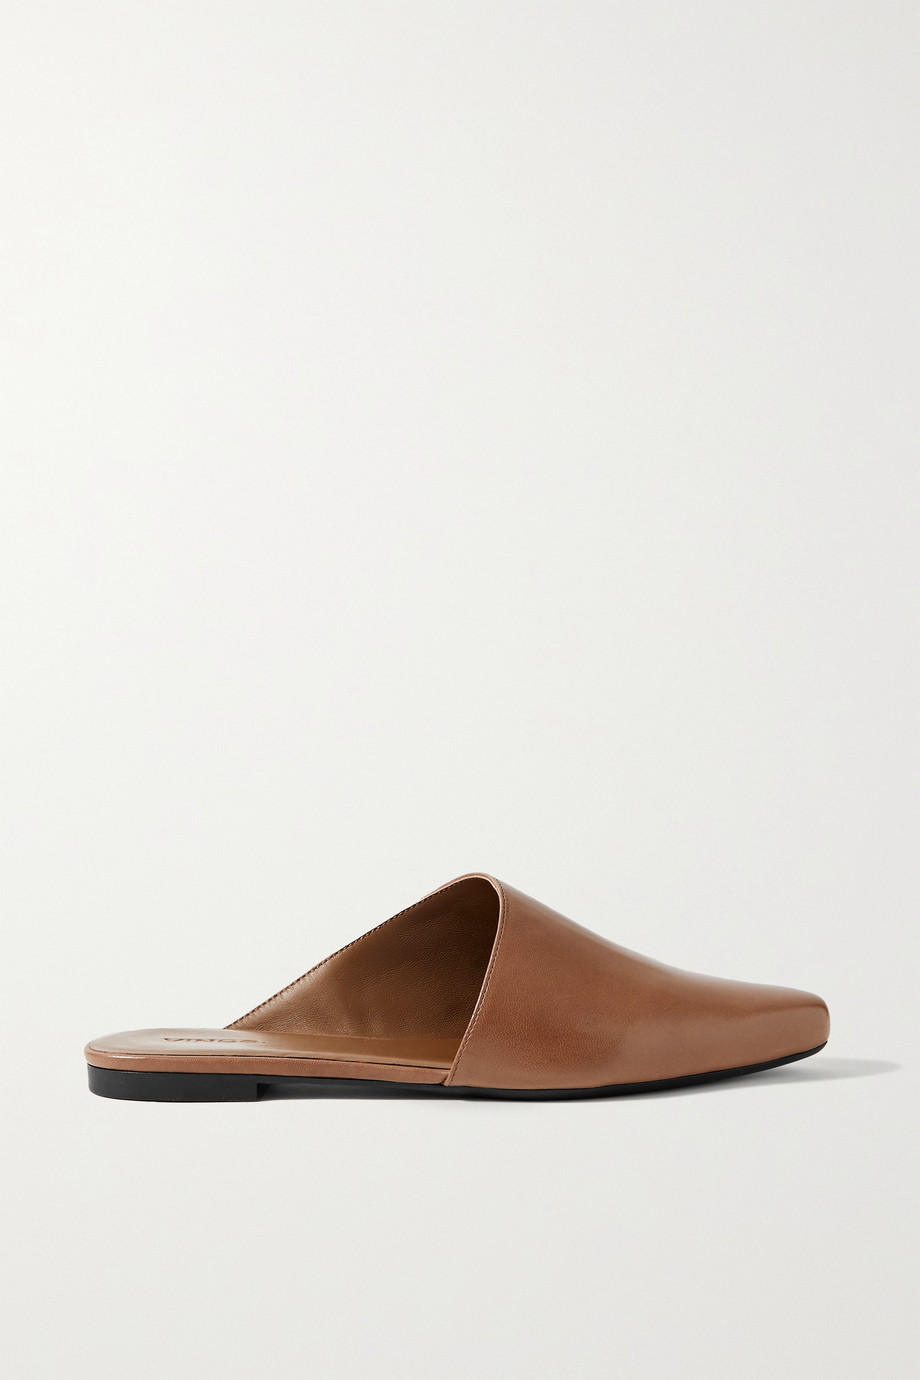 VINCE Gena leather slippers